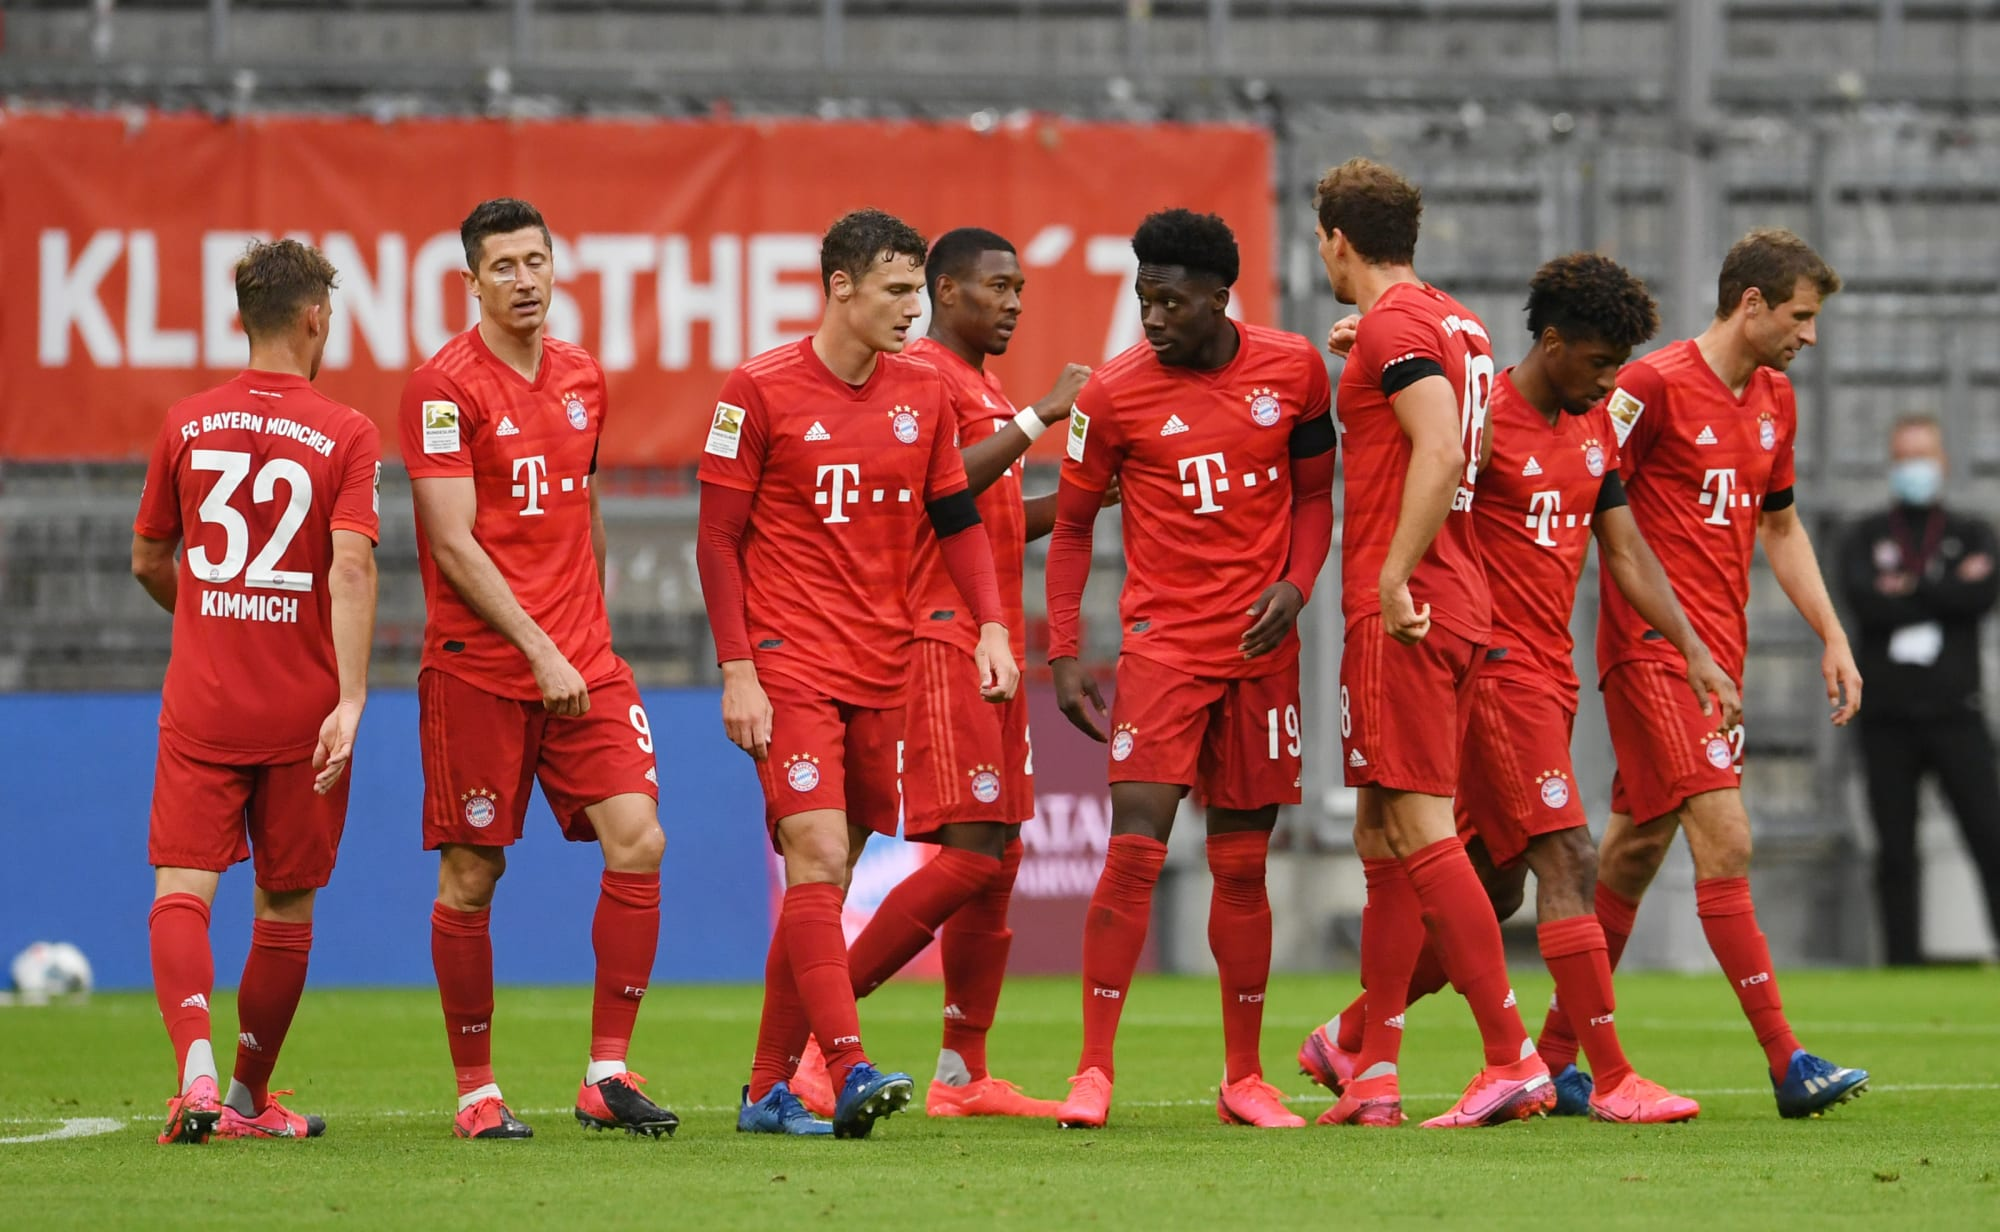 Bayern Munich: Top three performers in May